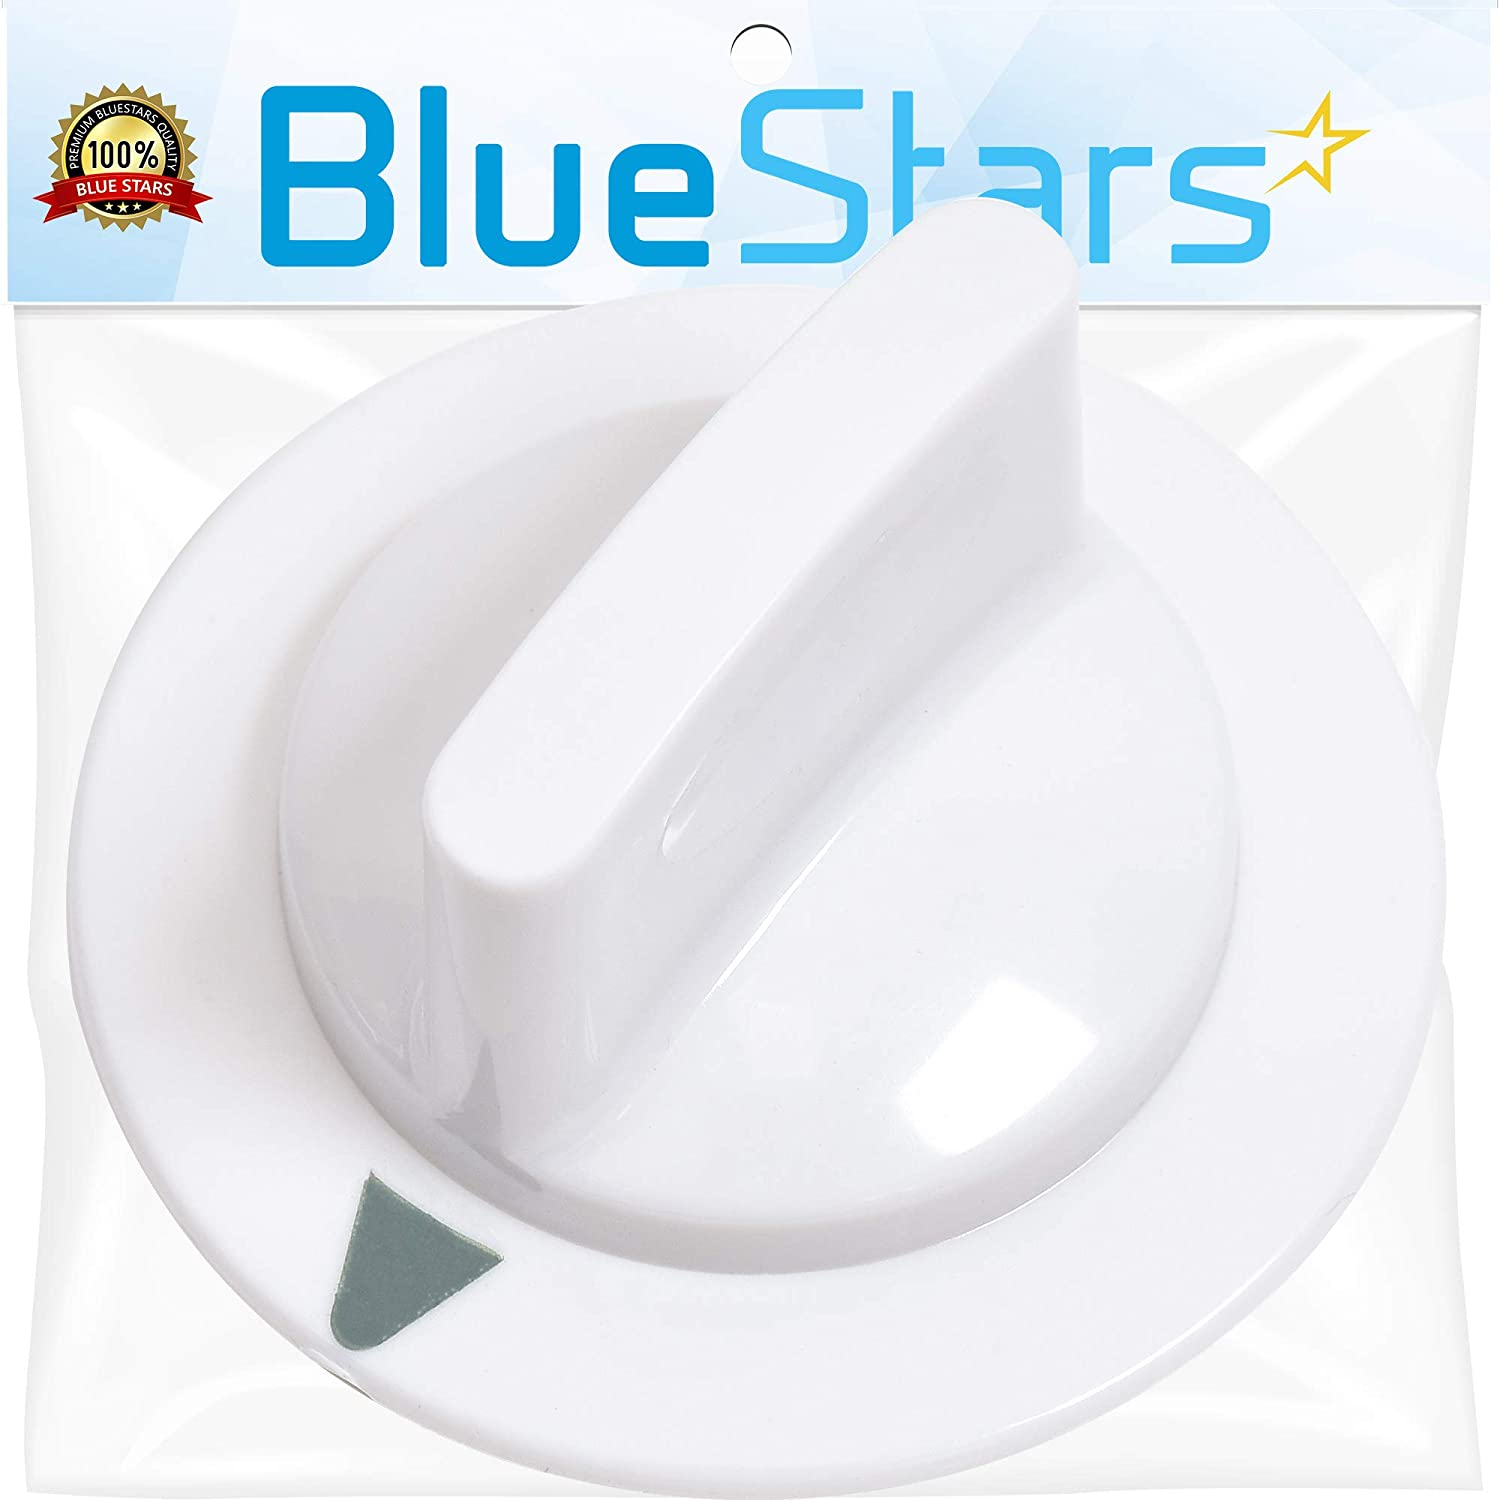 Ultra Durable WE1M652 Timer Knob Replacement Part by Blue Stars - Exact Fit for Hotpoint General Electric Dryer - Replaces 1264289 AP3995164 PS1482196